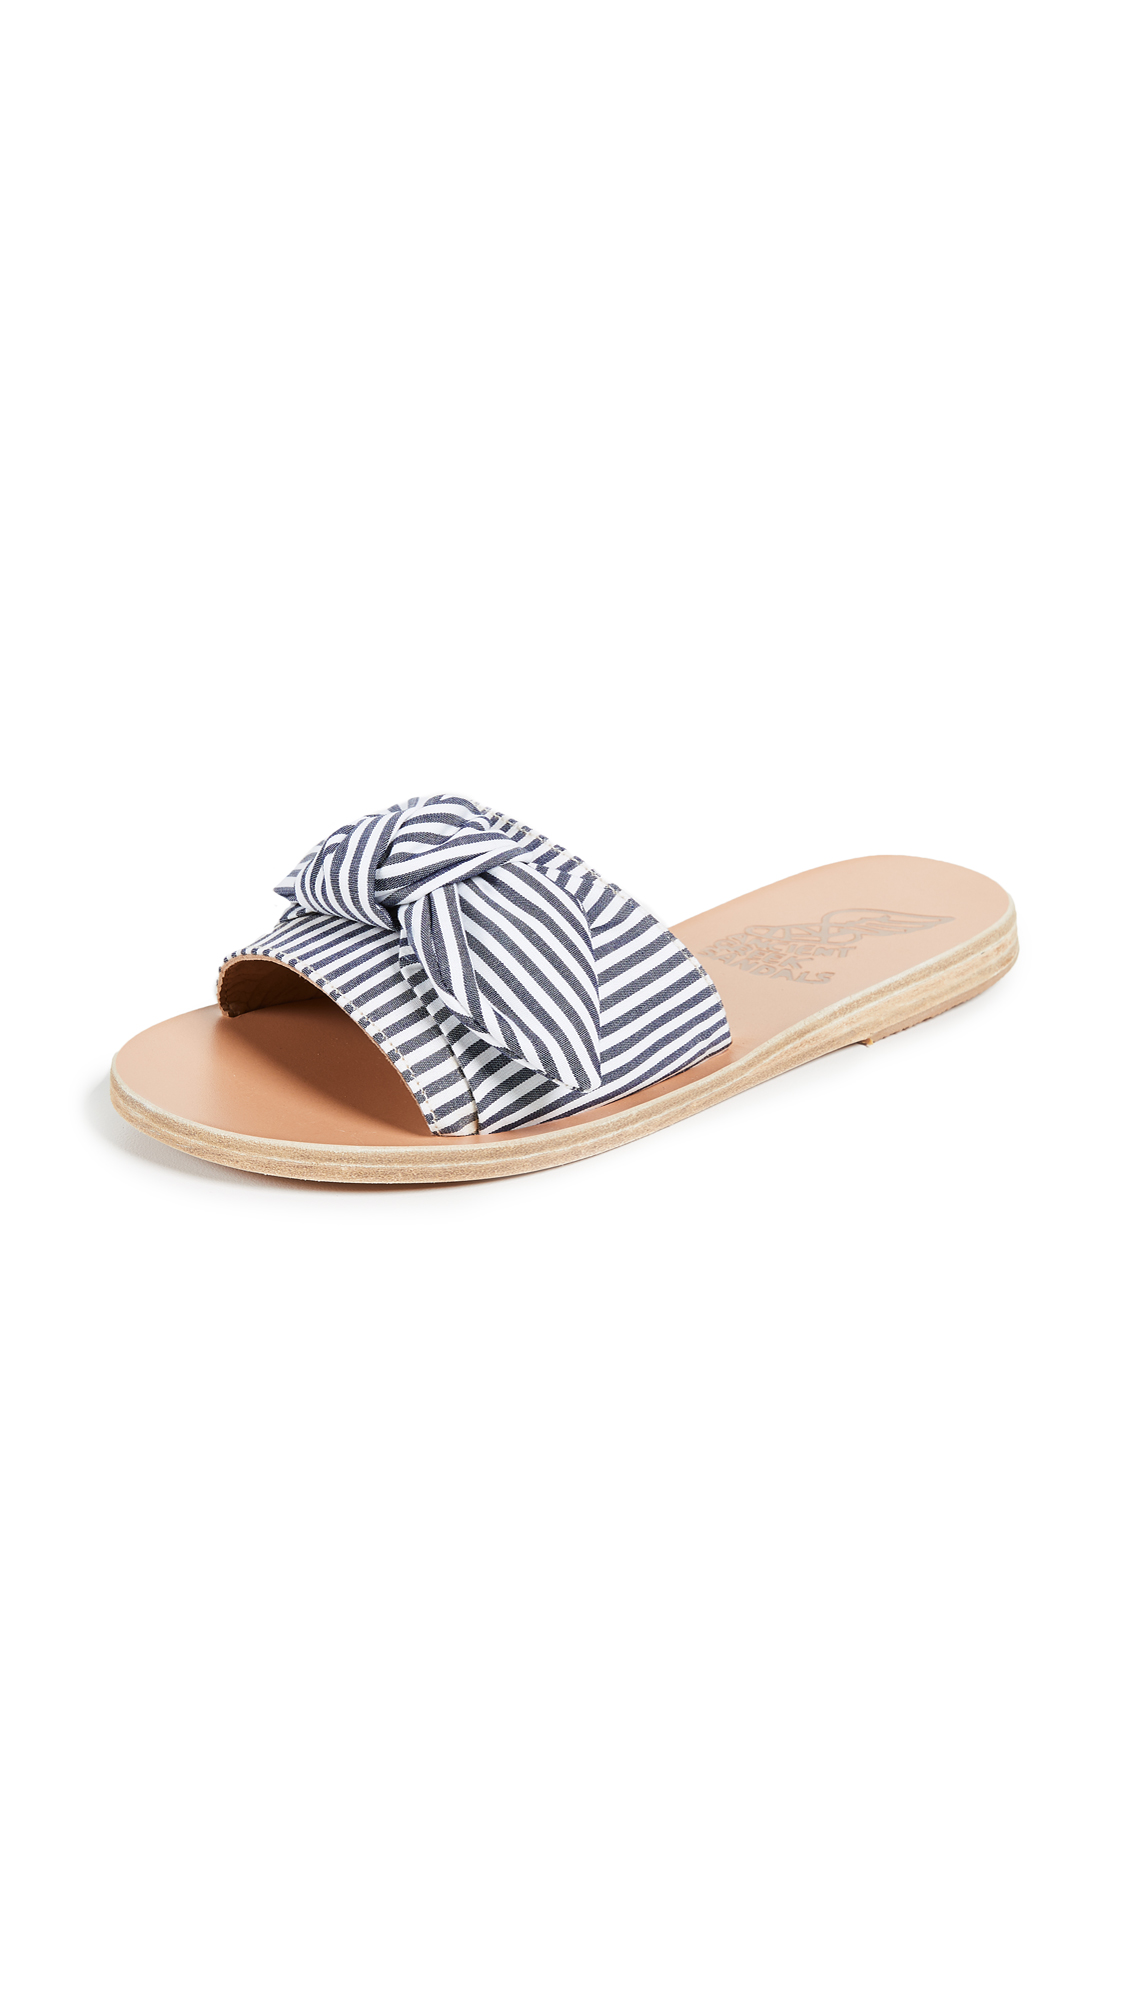 Ancient Greek Sandals Taygete Bow Slides - Stripes Black